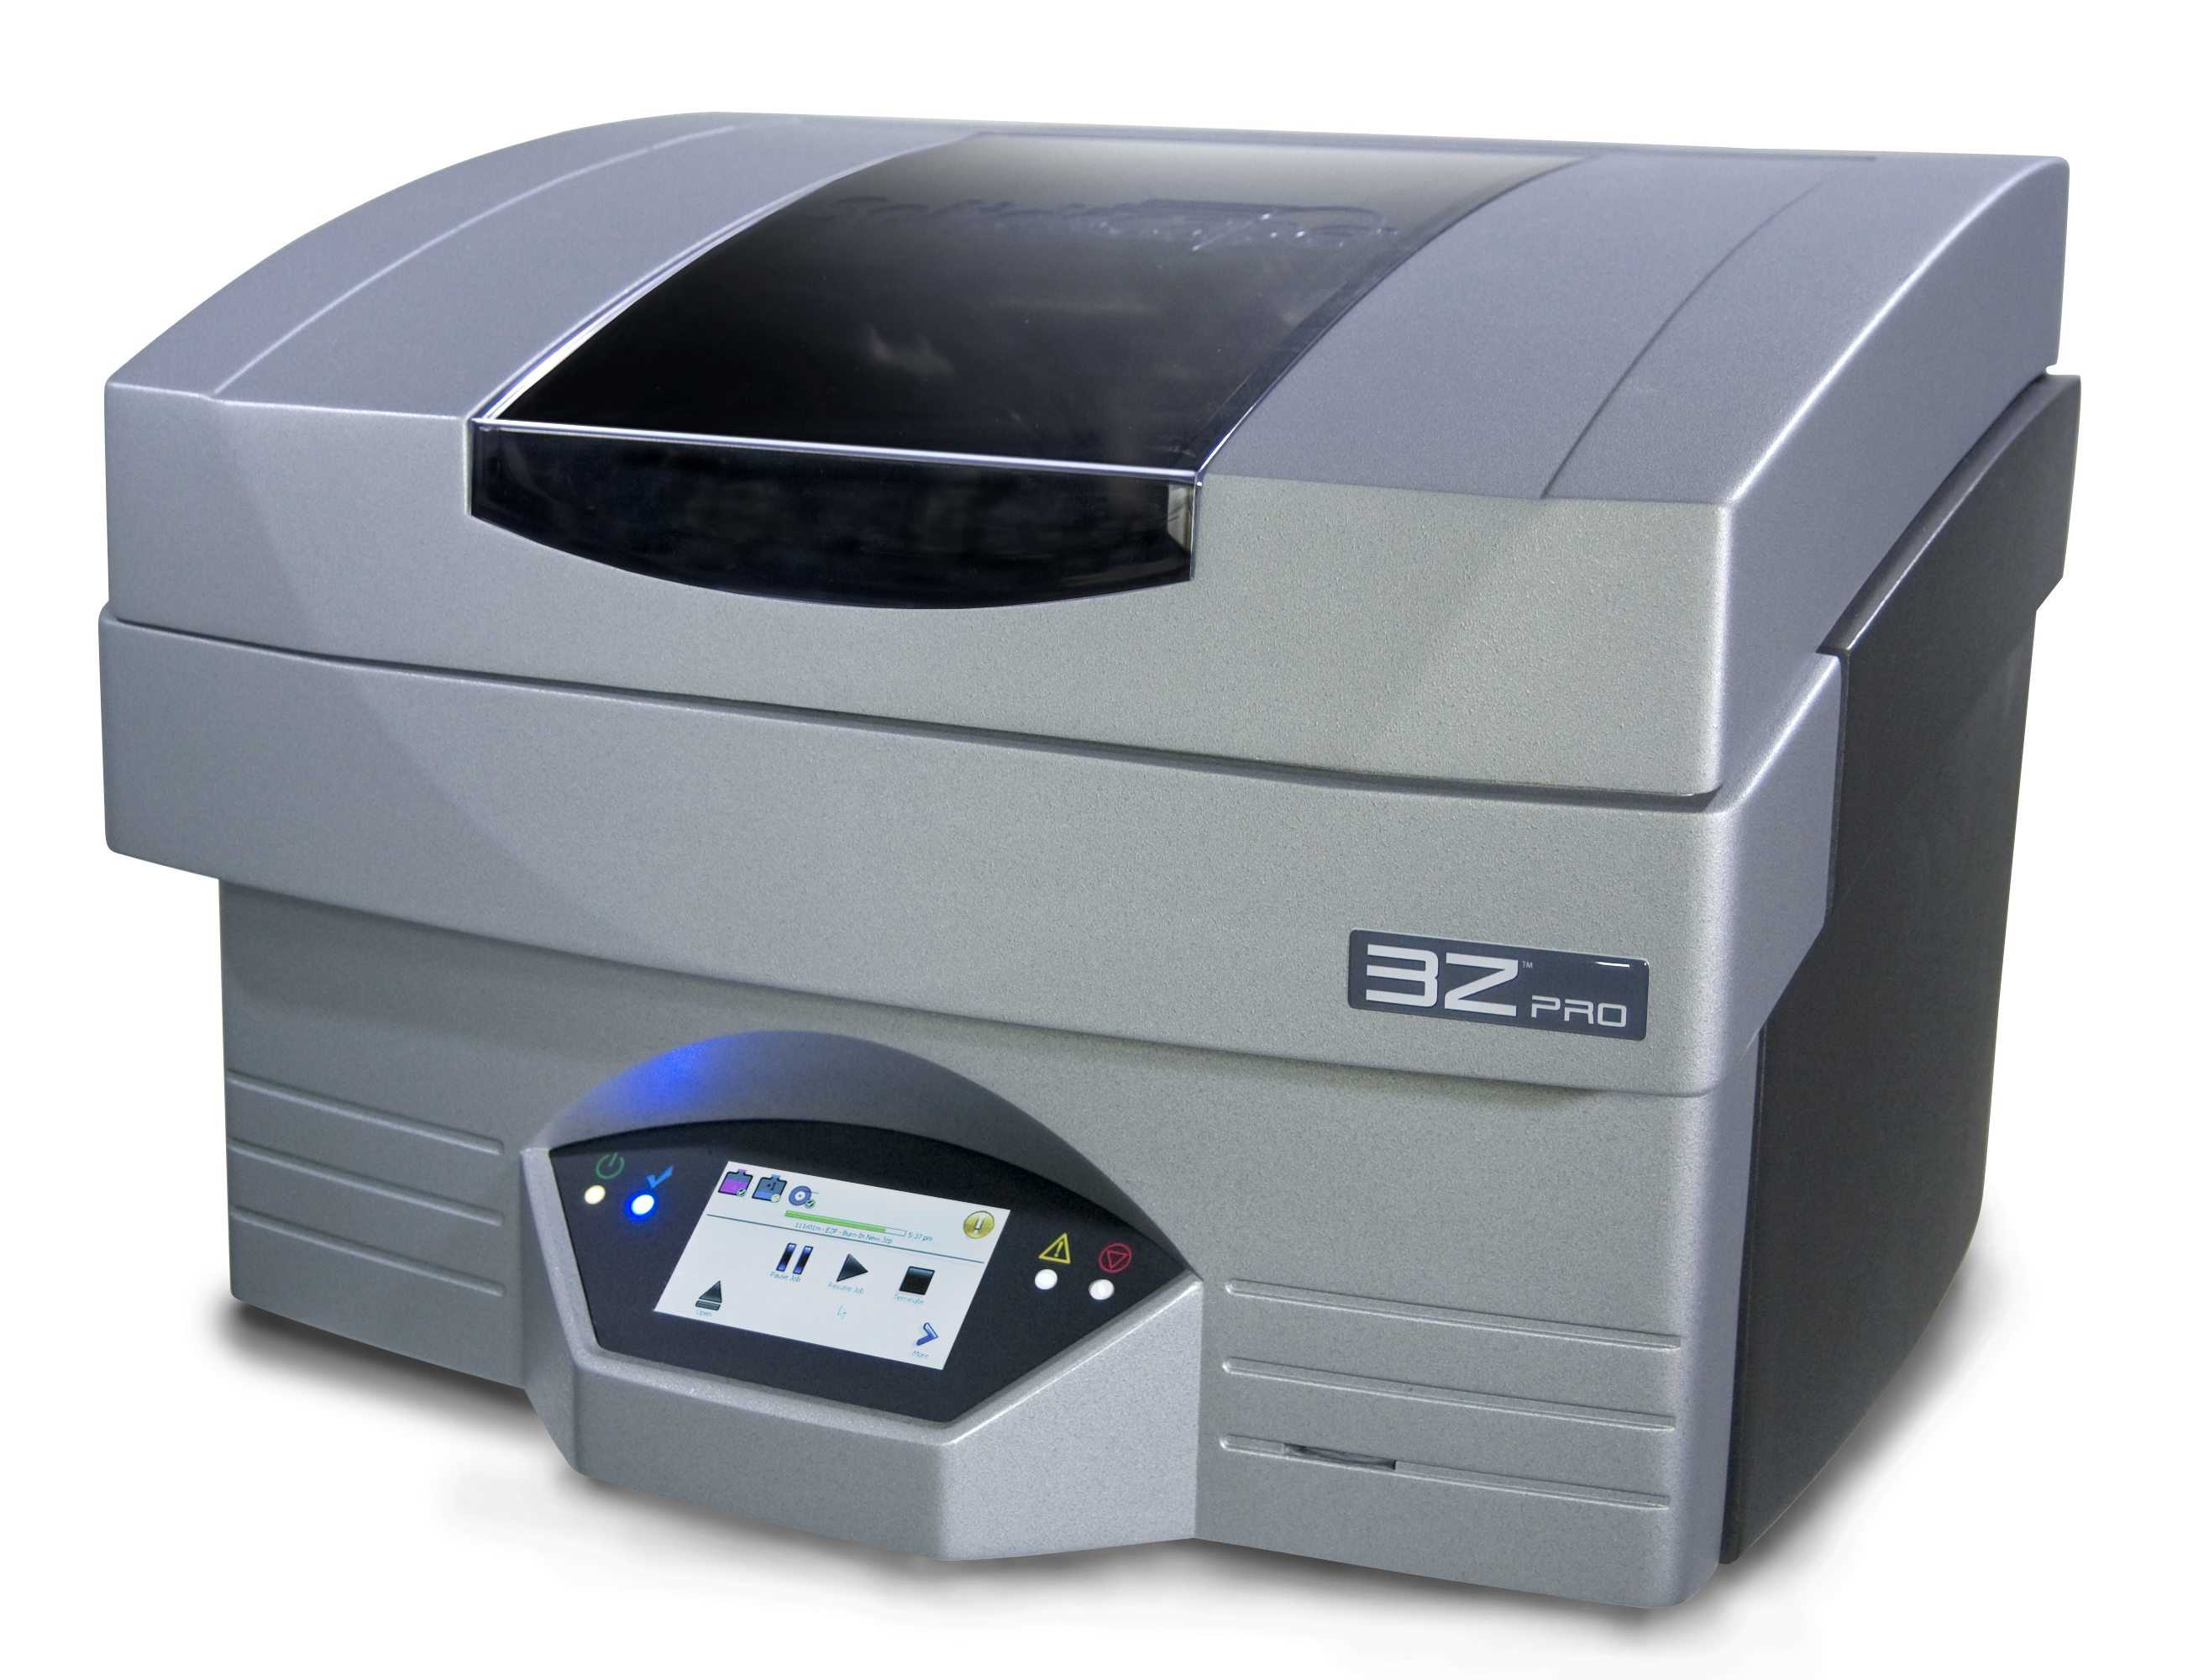 Solidscape pro demo unit on sale 25 000 for 3d wax printer for jewelry